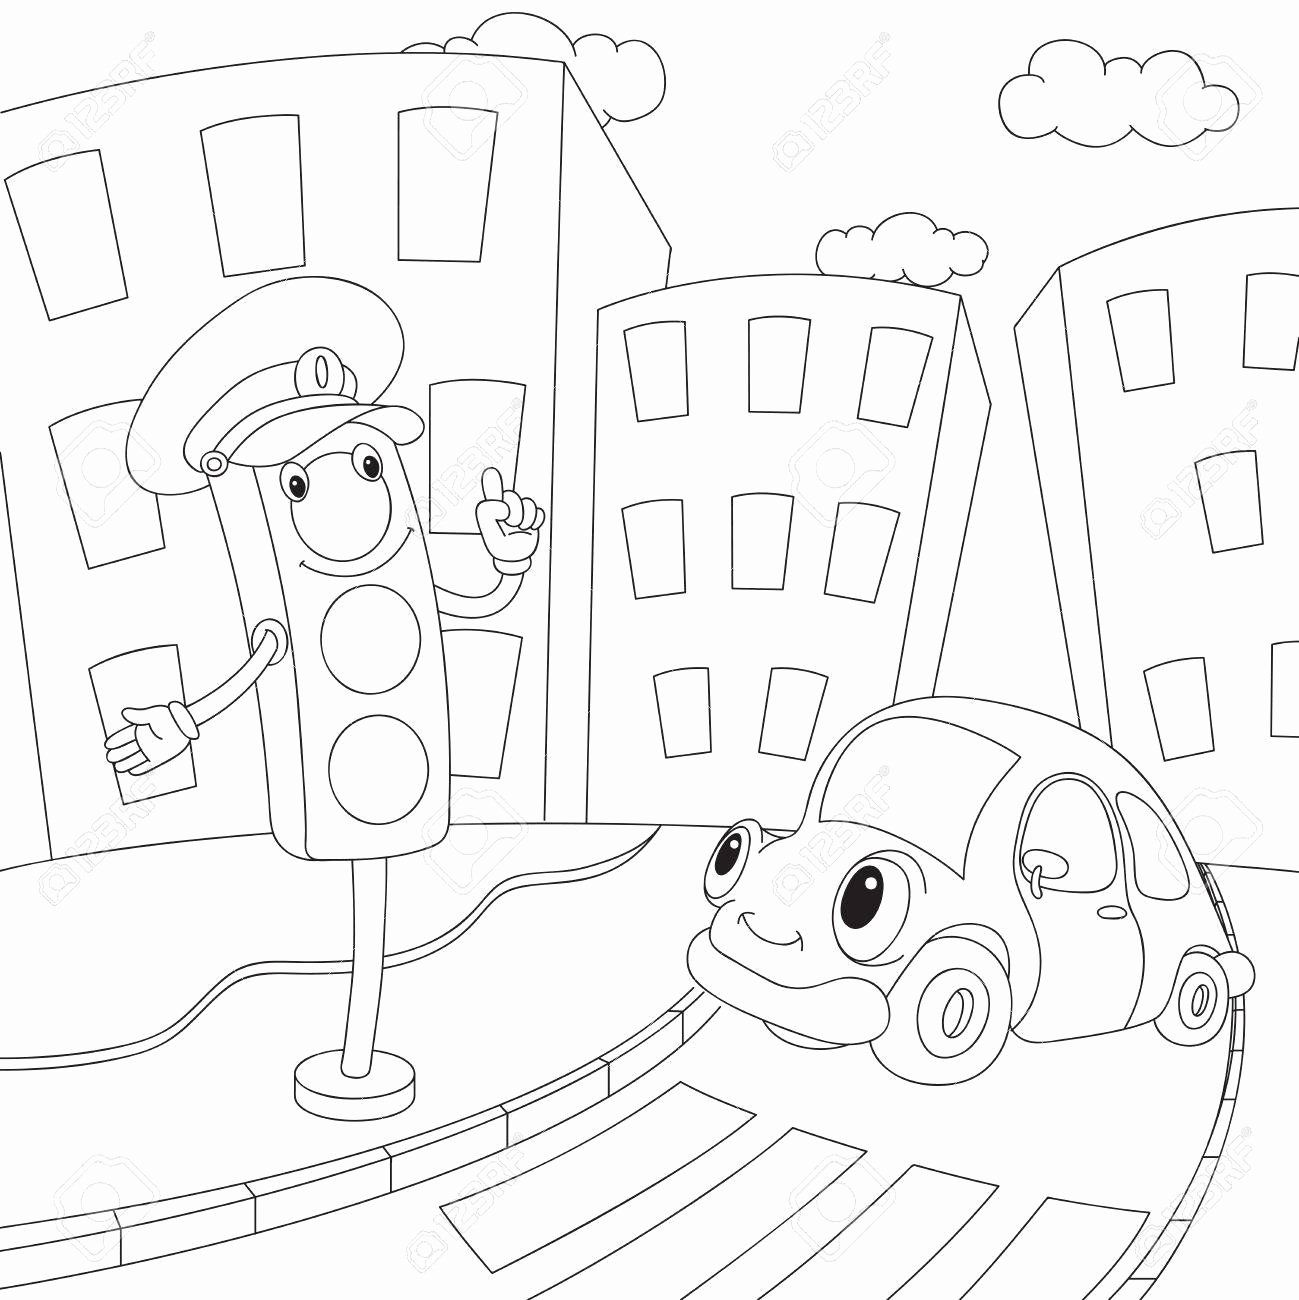 Stop Light Coloring Page Inspirational Traffic Lights